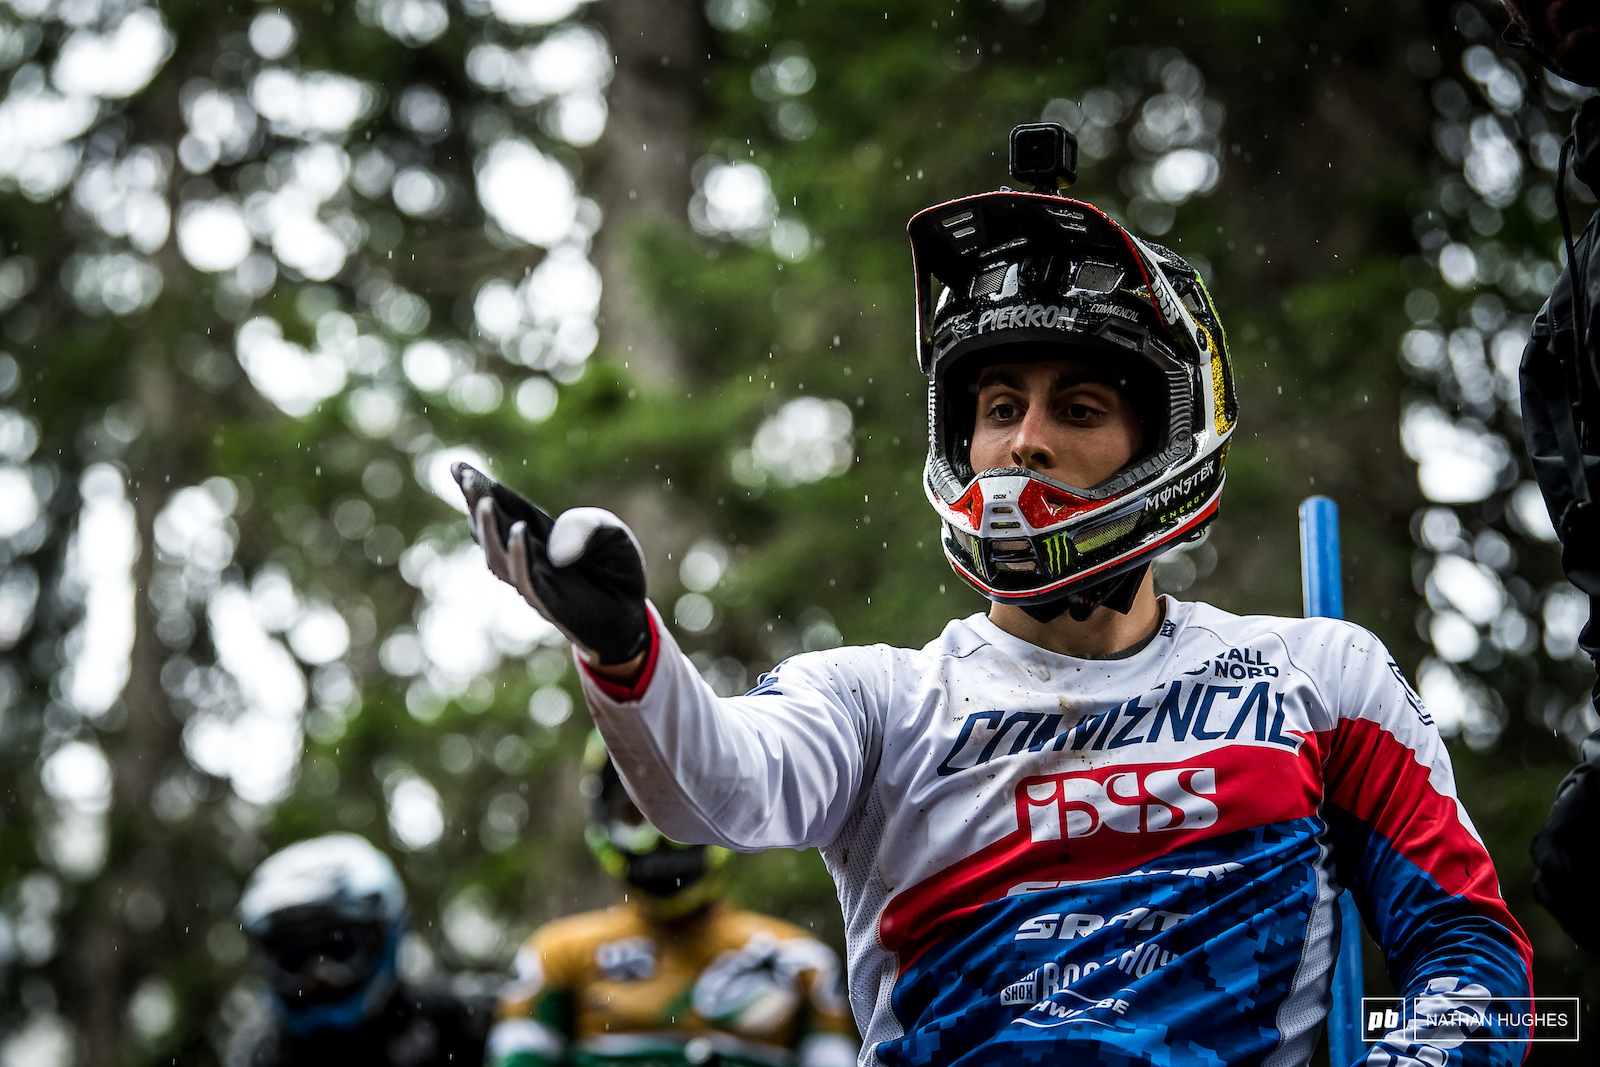 Happy enough with the WC overall or still pinning for more We think we know what Pierron s into.